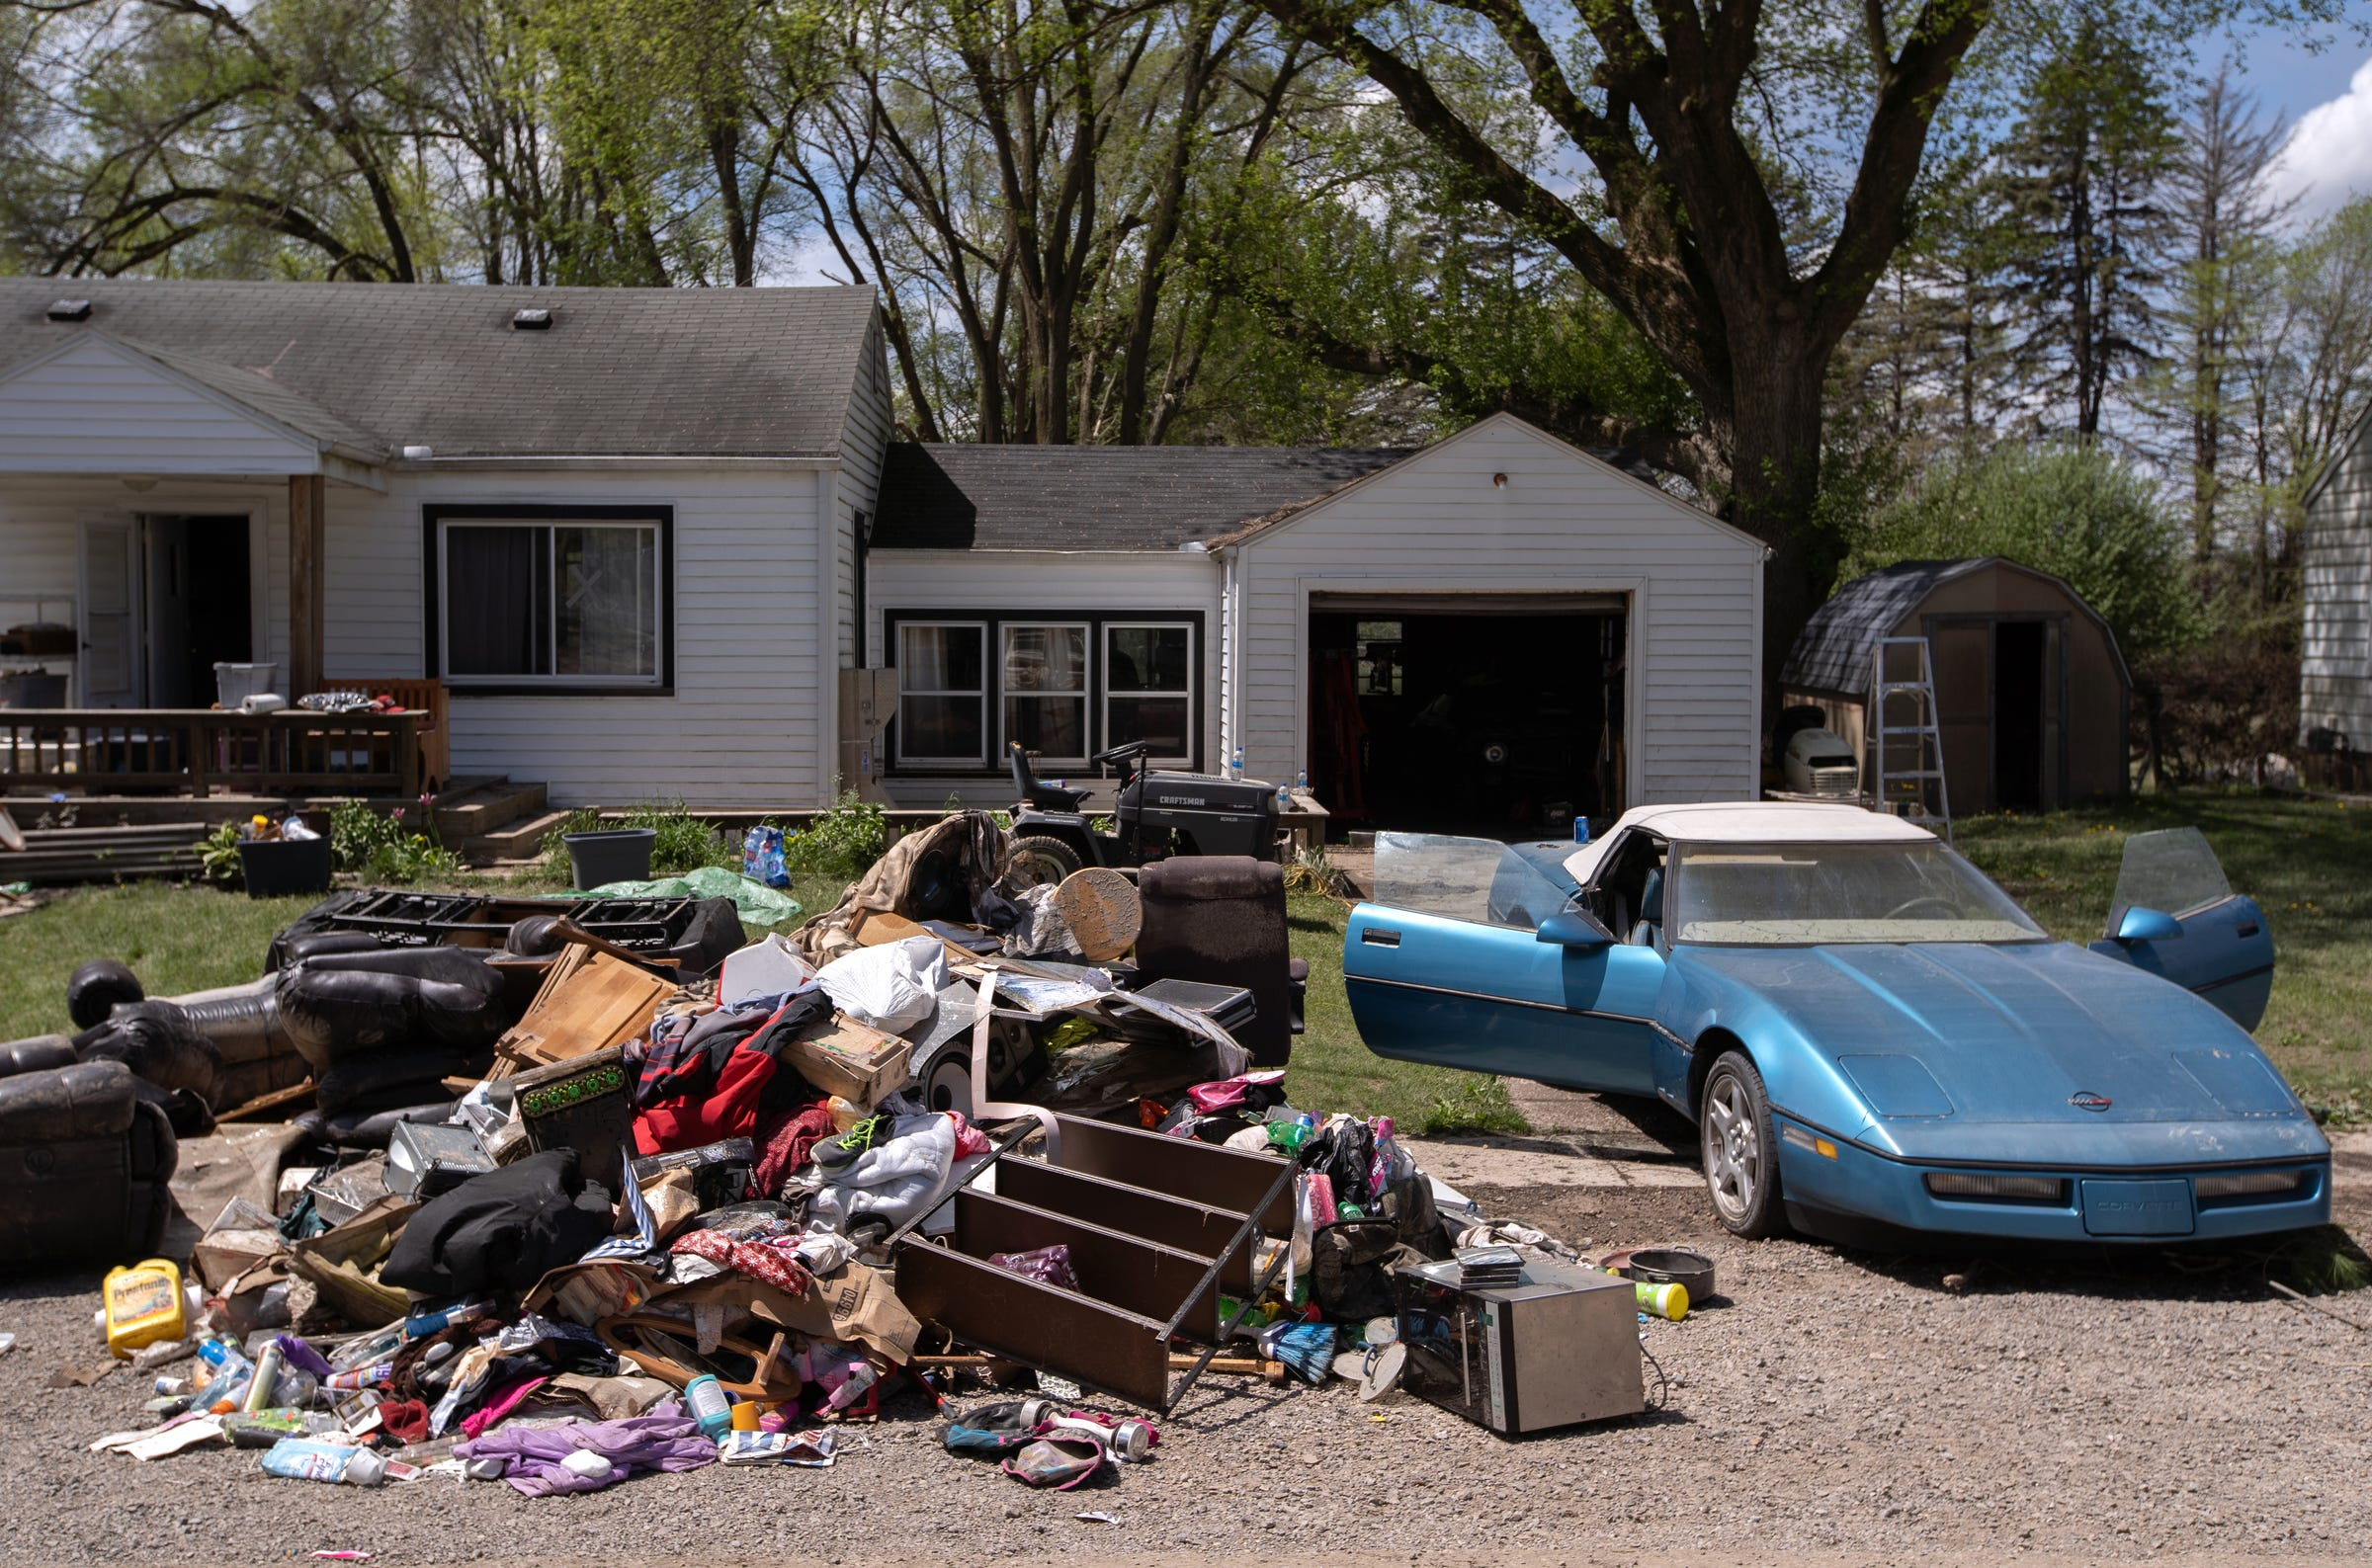 Randy Parsons' belongings are laid out at the curb of his home in Sanford on Friday, May 22, 2020.